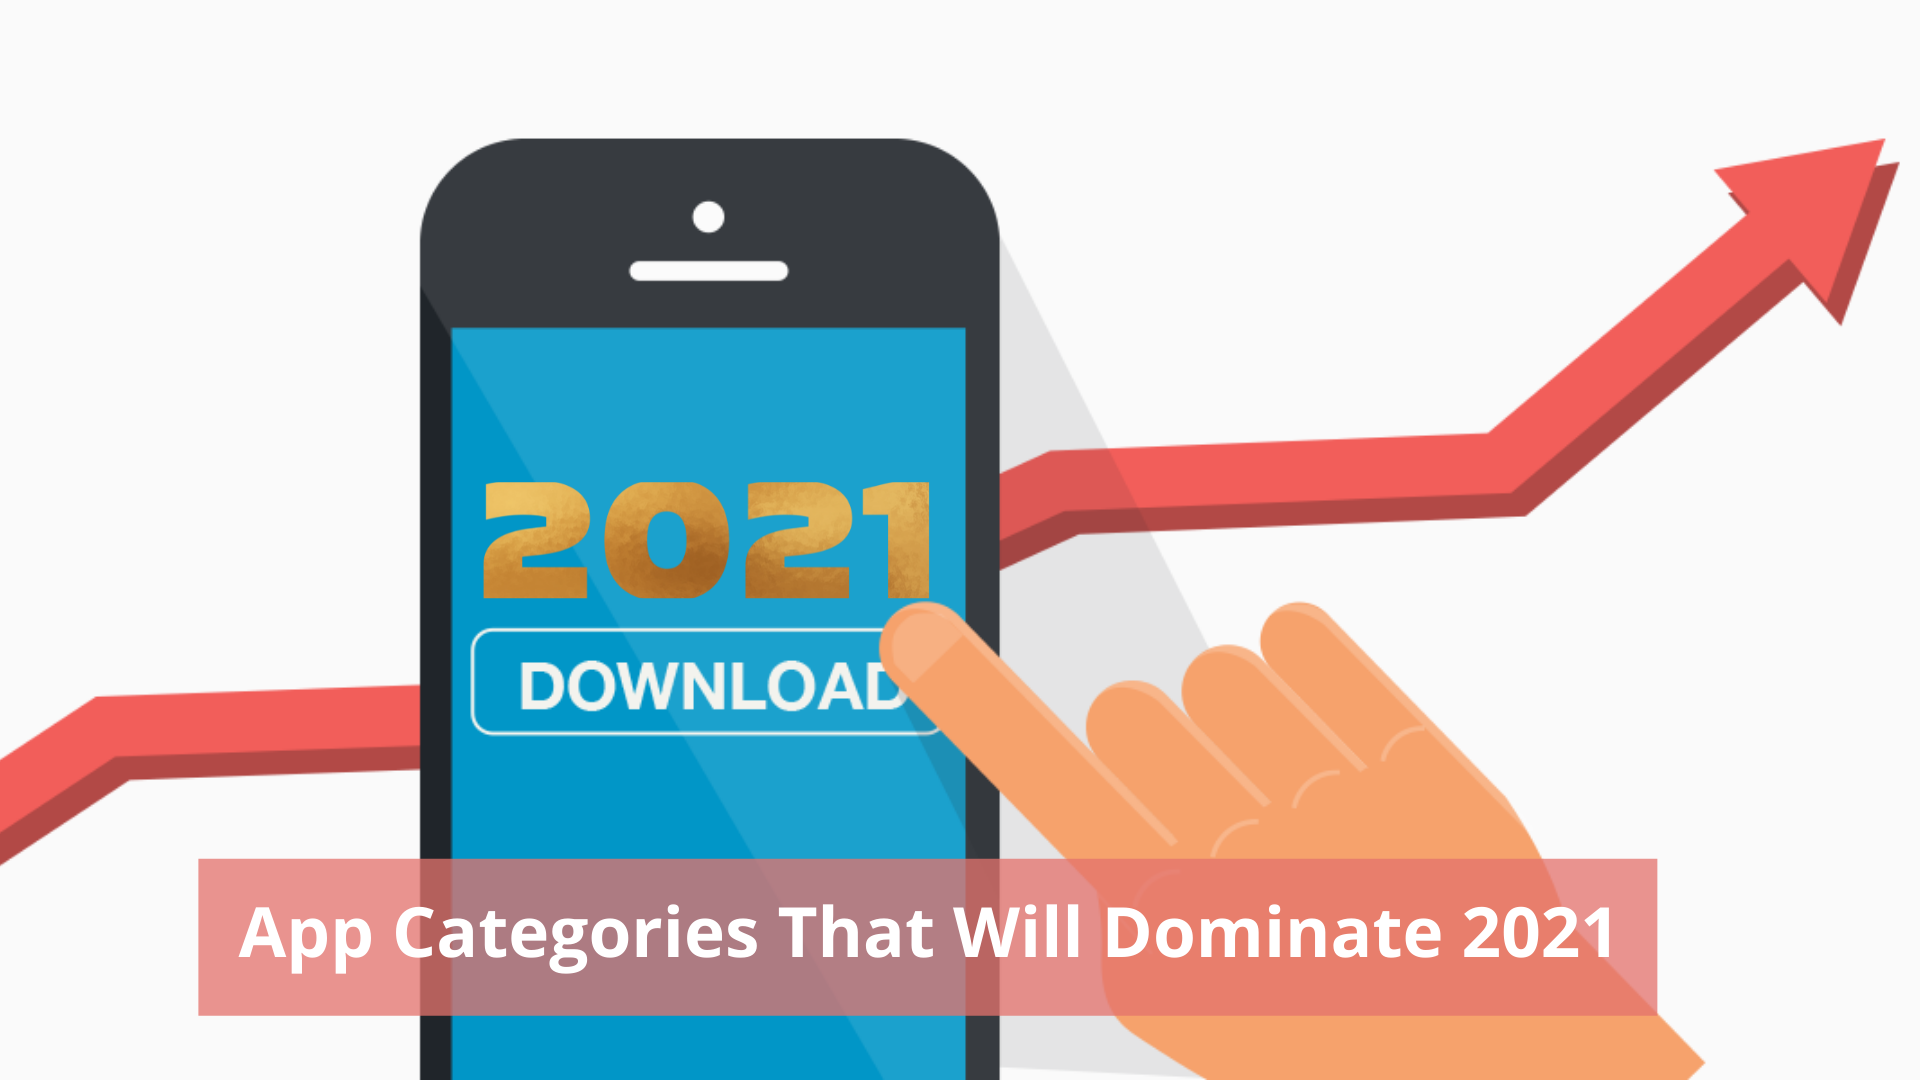 App Categories That Will Dominate 2021